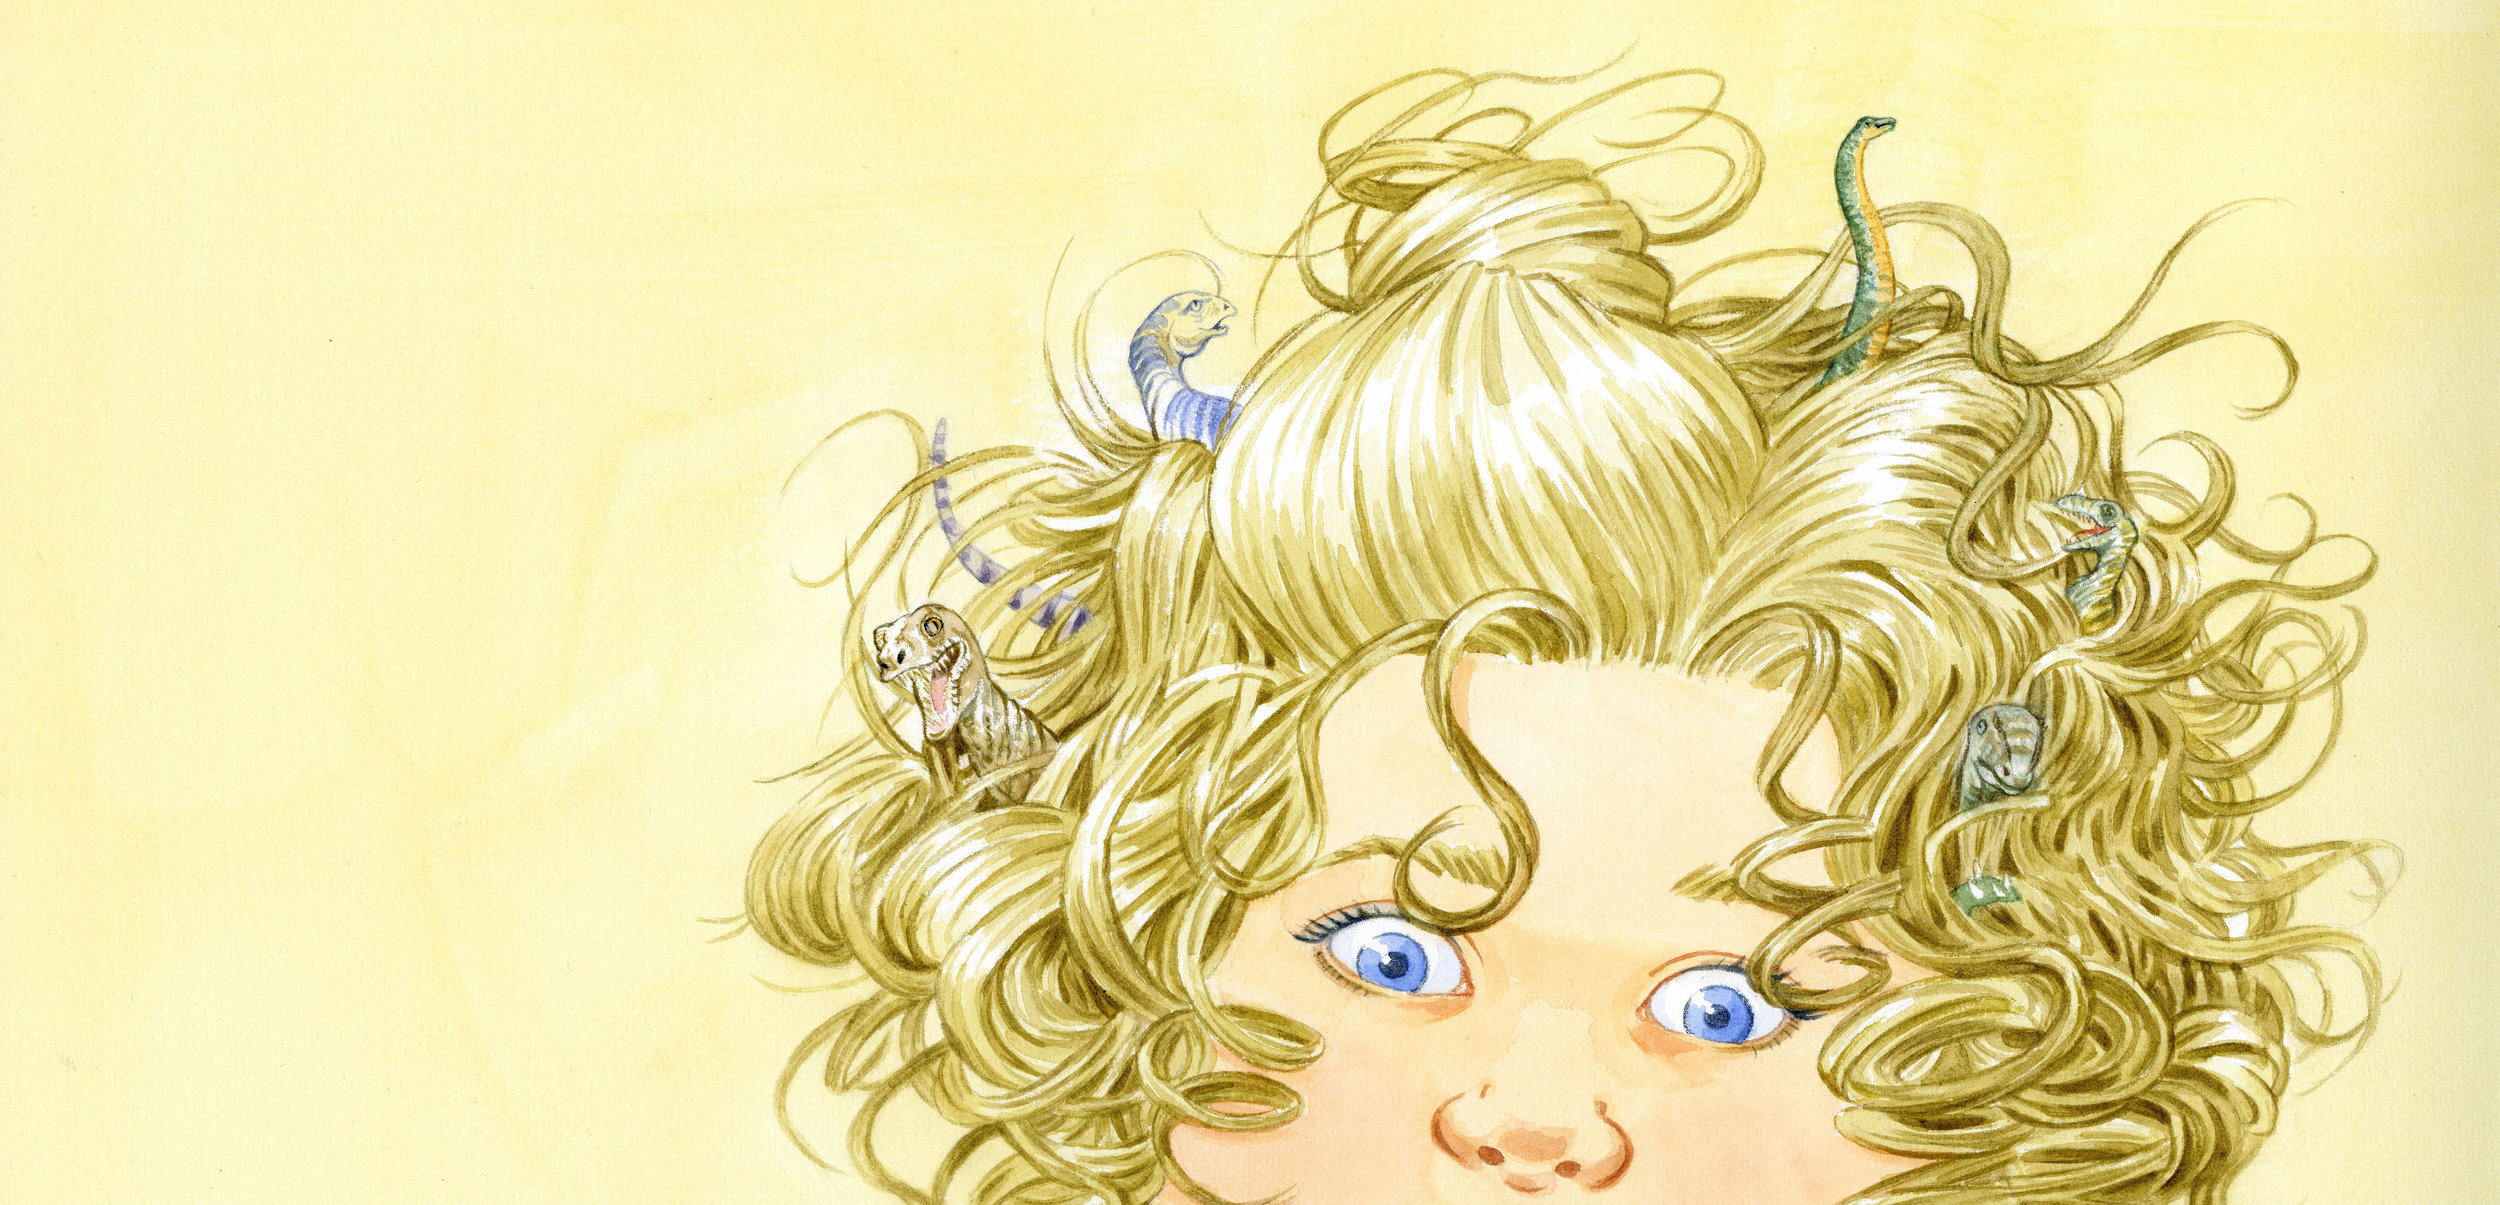 Illustration by Anni Matsick from the children's picture book Dinosaurs Living in My Hair!  In the book by Jayne M. Rose-Vallee, 6-year-old Sabrina's unruly curls are difficult to manage. When her mother warns that creatures could hide out there, Sabrina's imagination takes over.